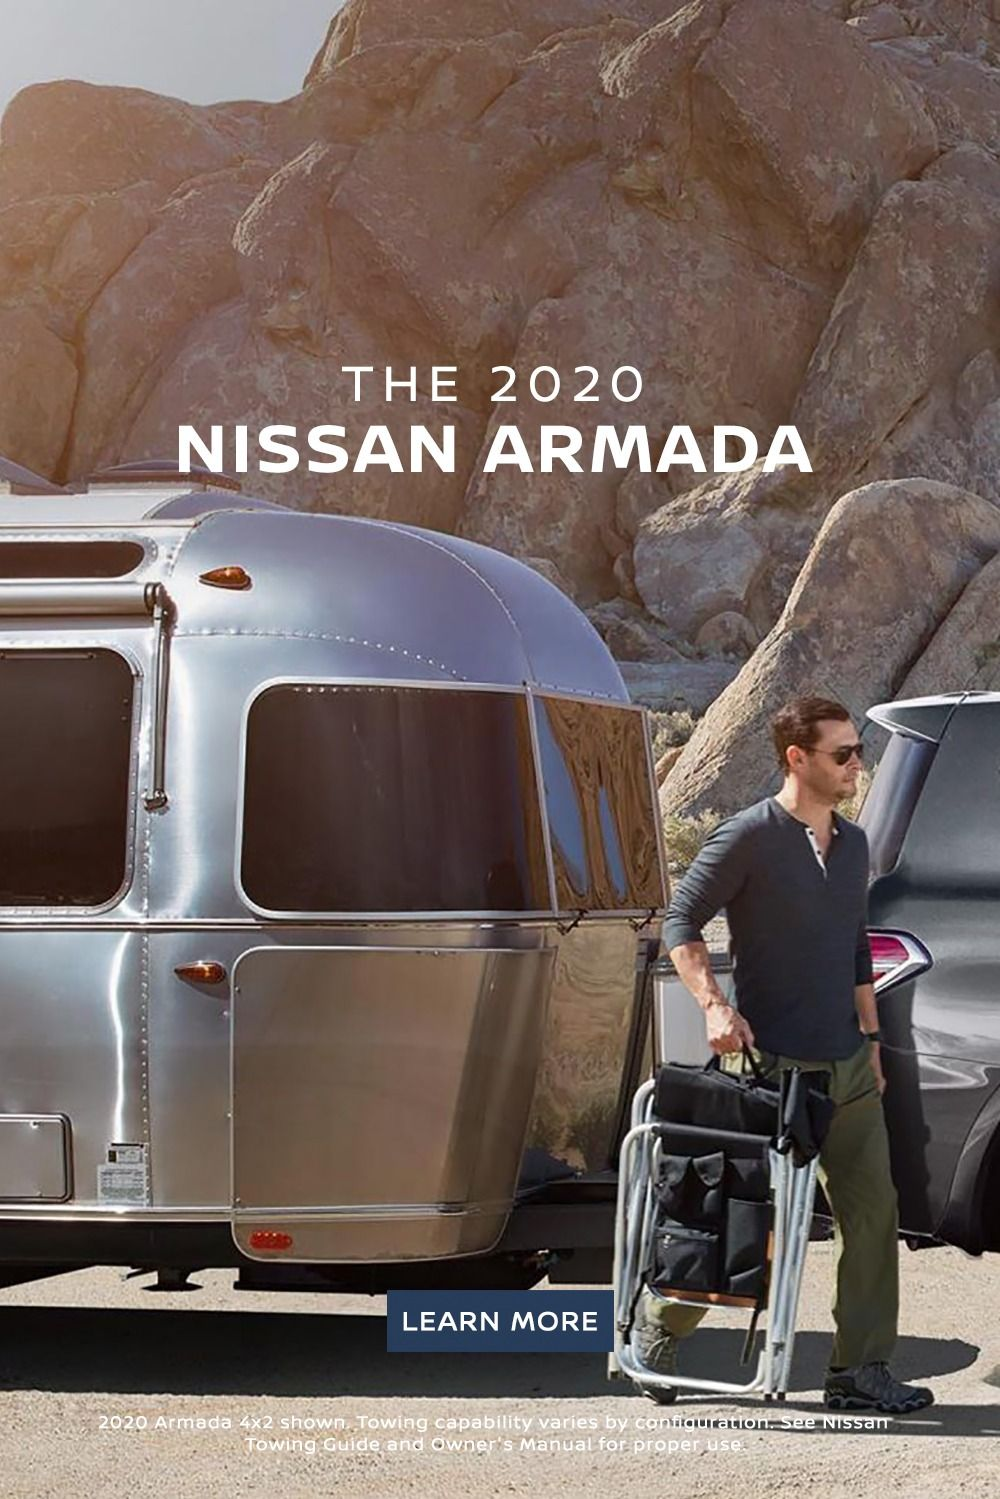 Intelligence With Attitude In 2020 With Images Nissan Armada Best Muscle Cars Nissan